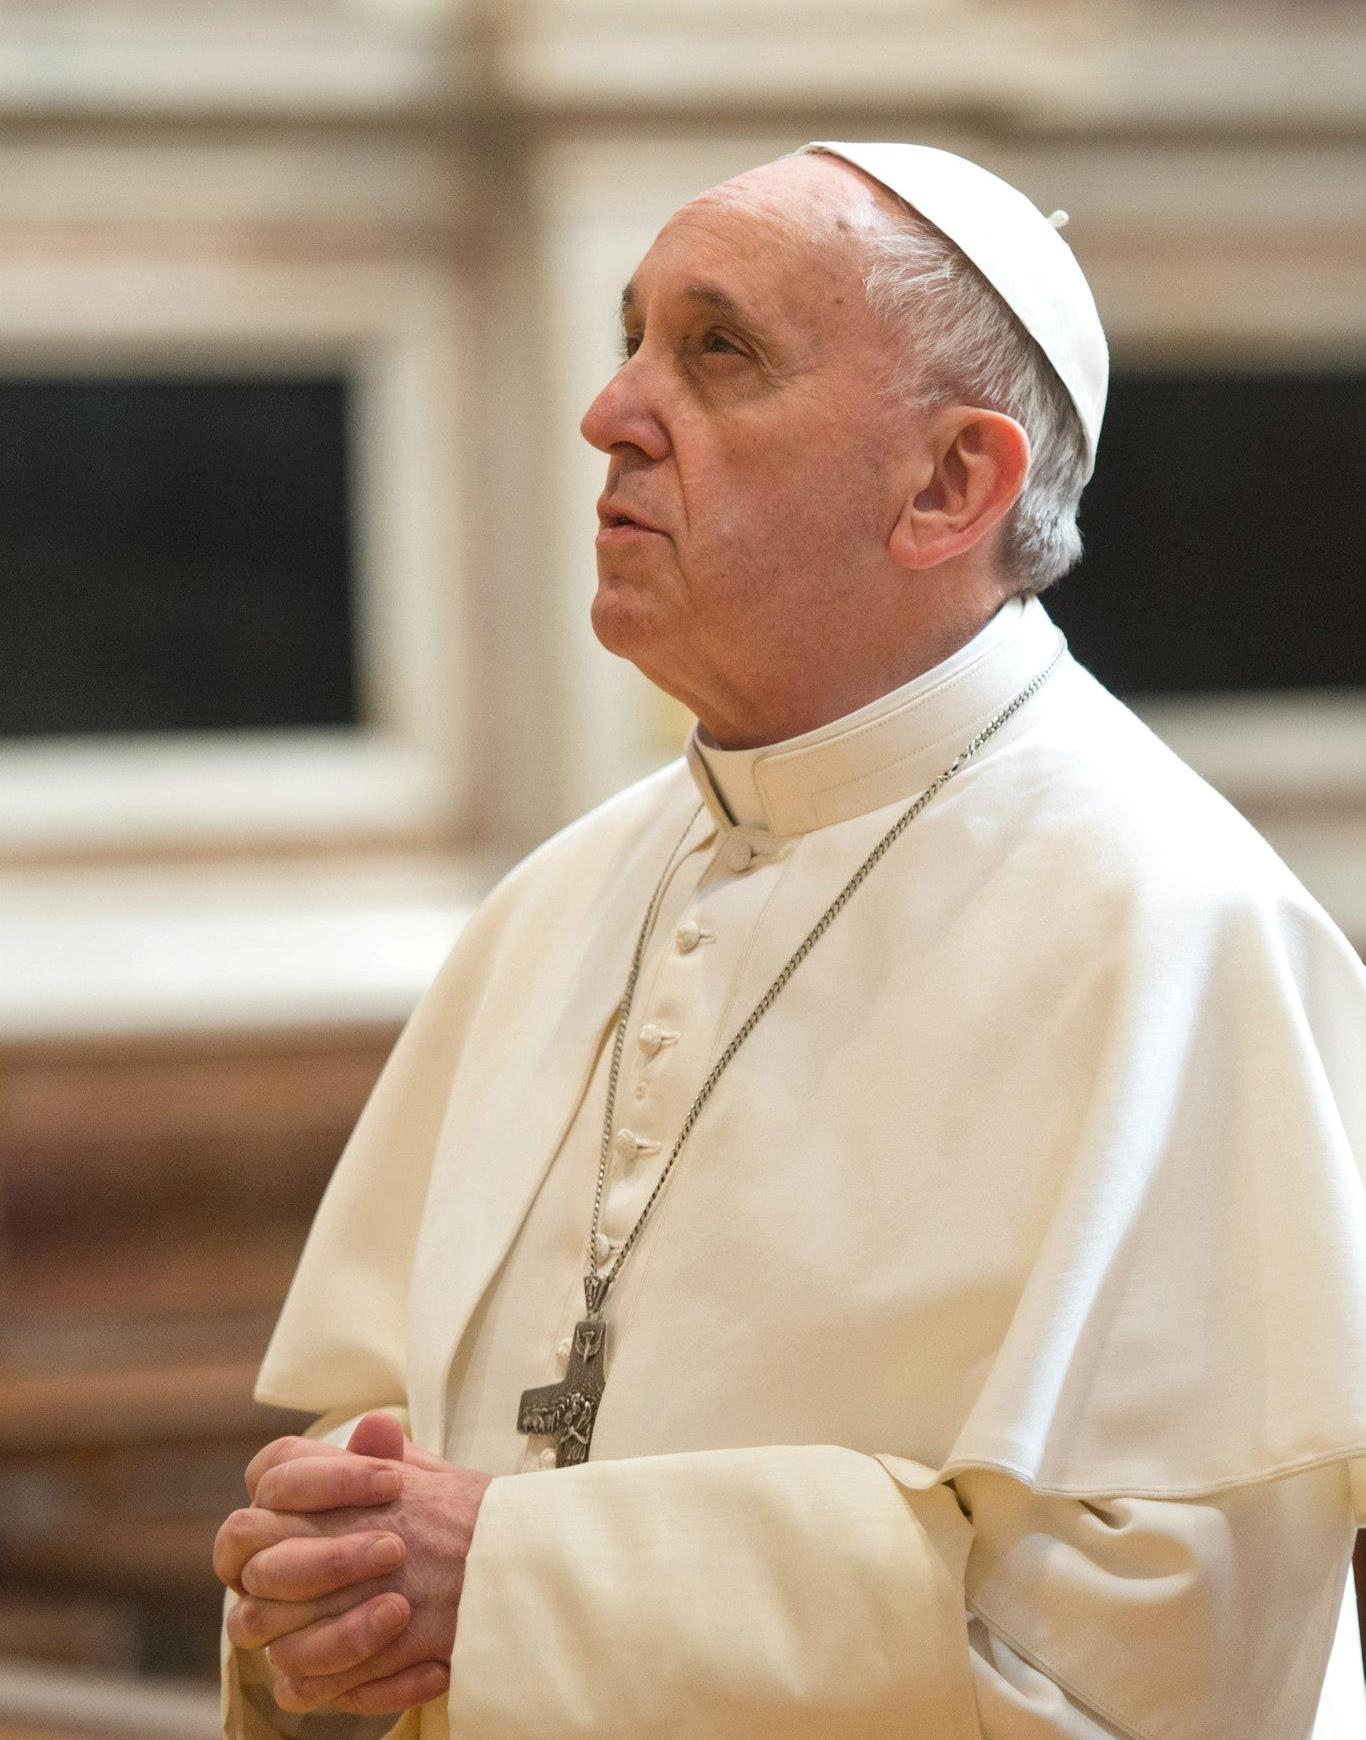 papaFrancisco14032013a1